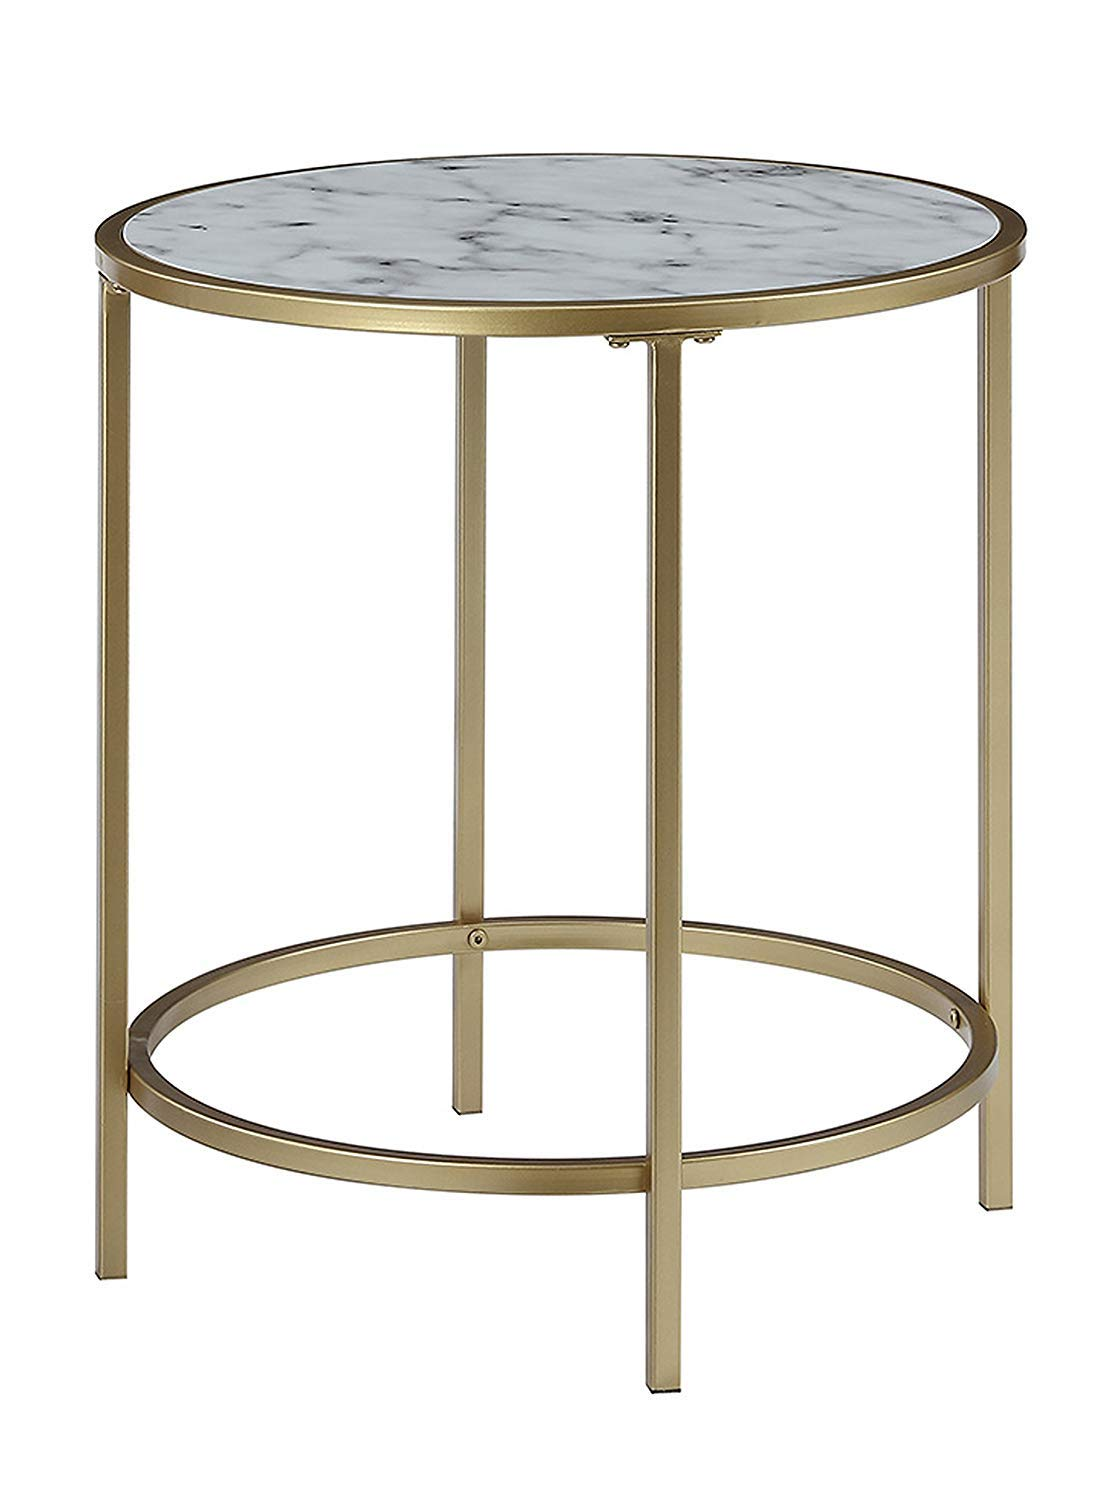 Convenience Concepts Gold Coast Deluxe Faux Marble Round End Table, White Faux Marble / Gold Frame